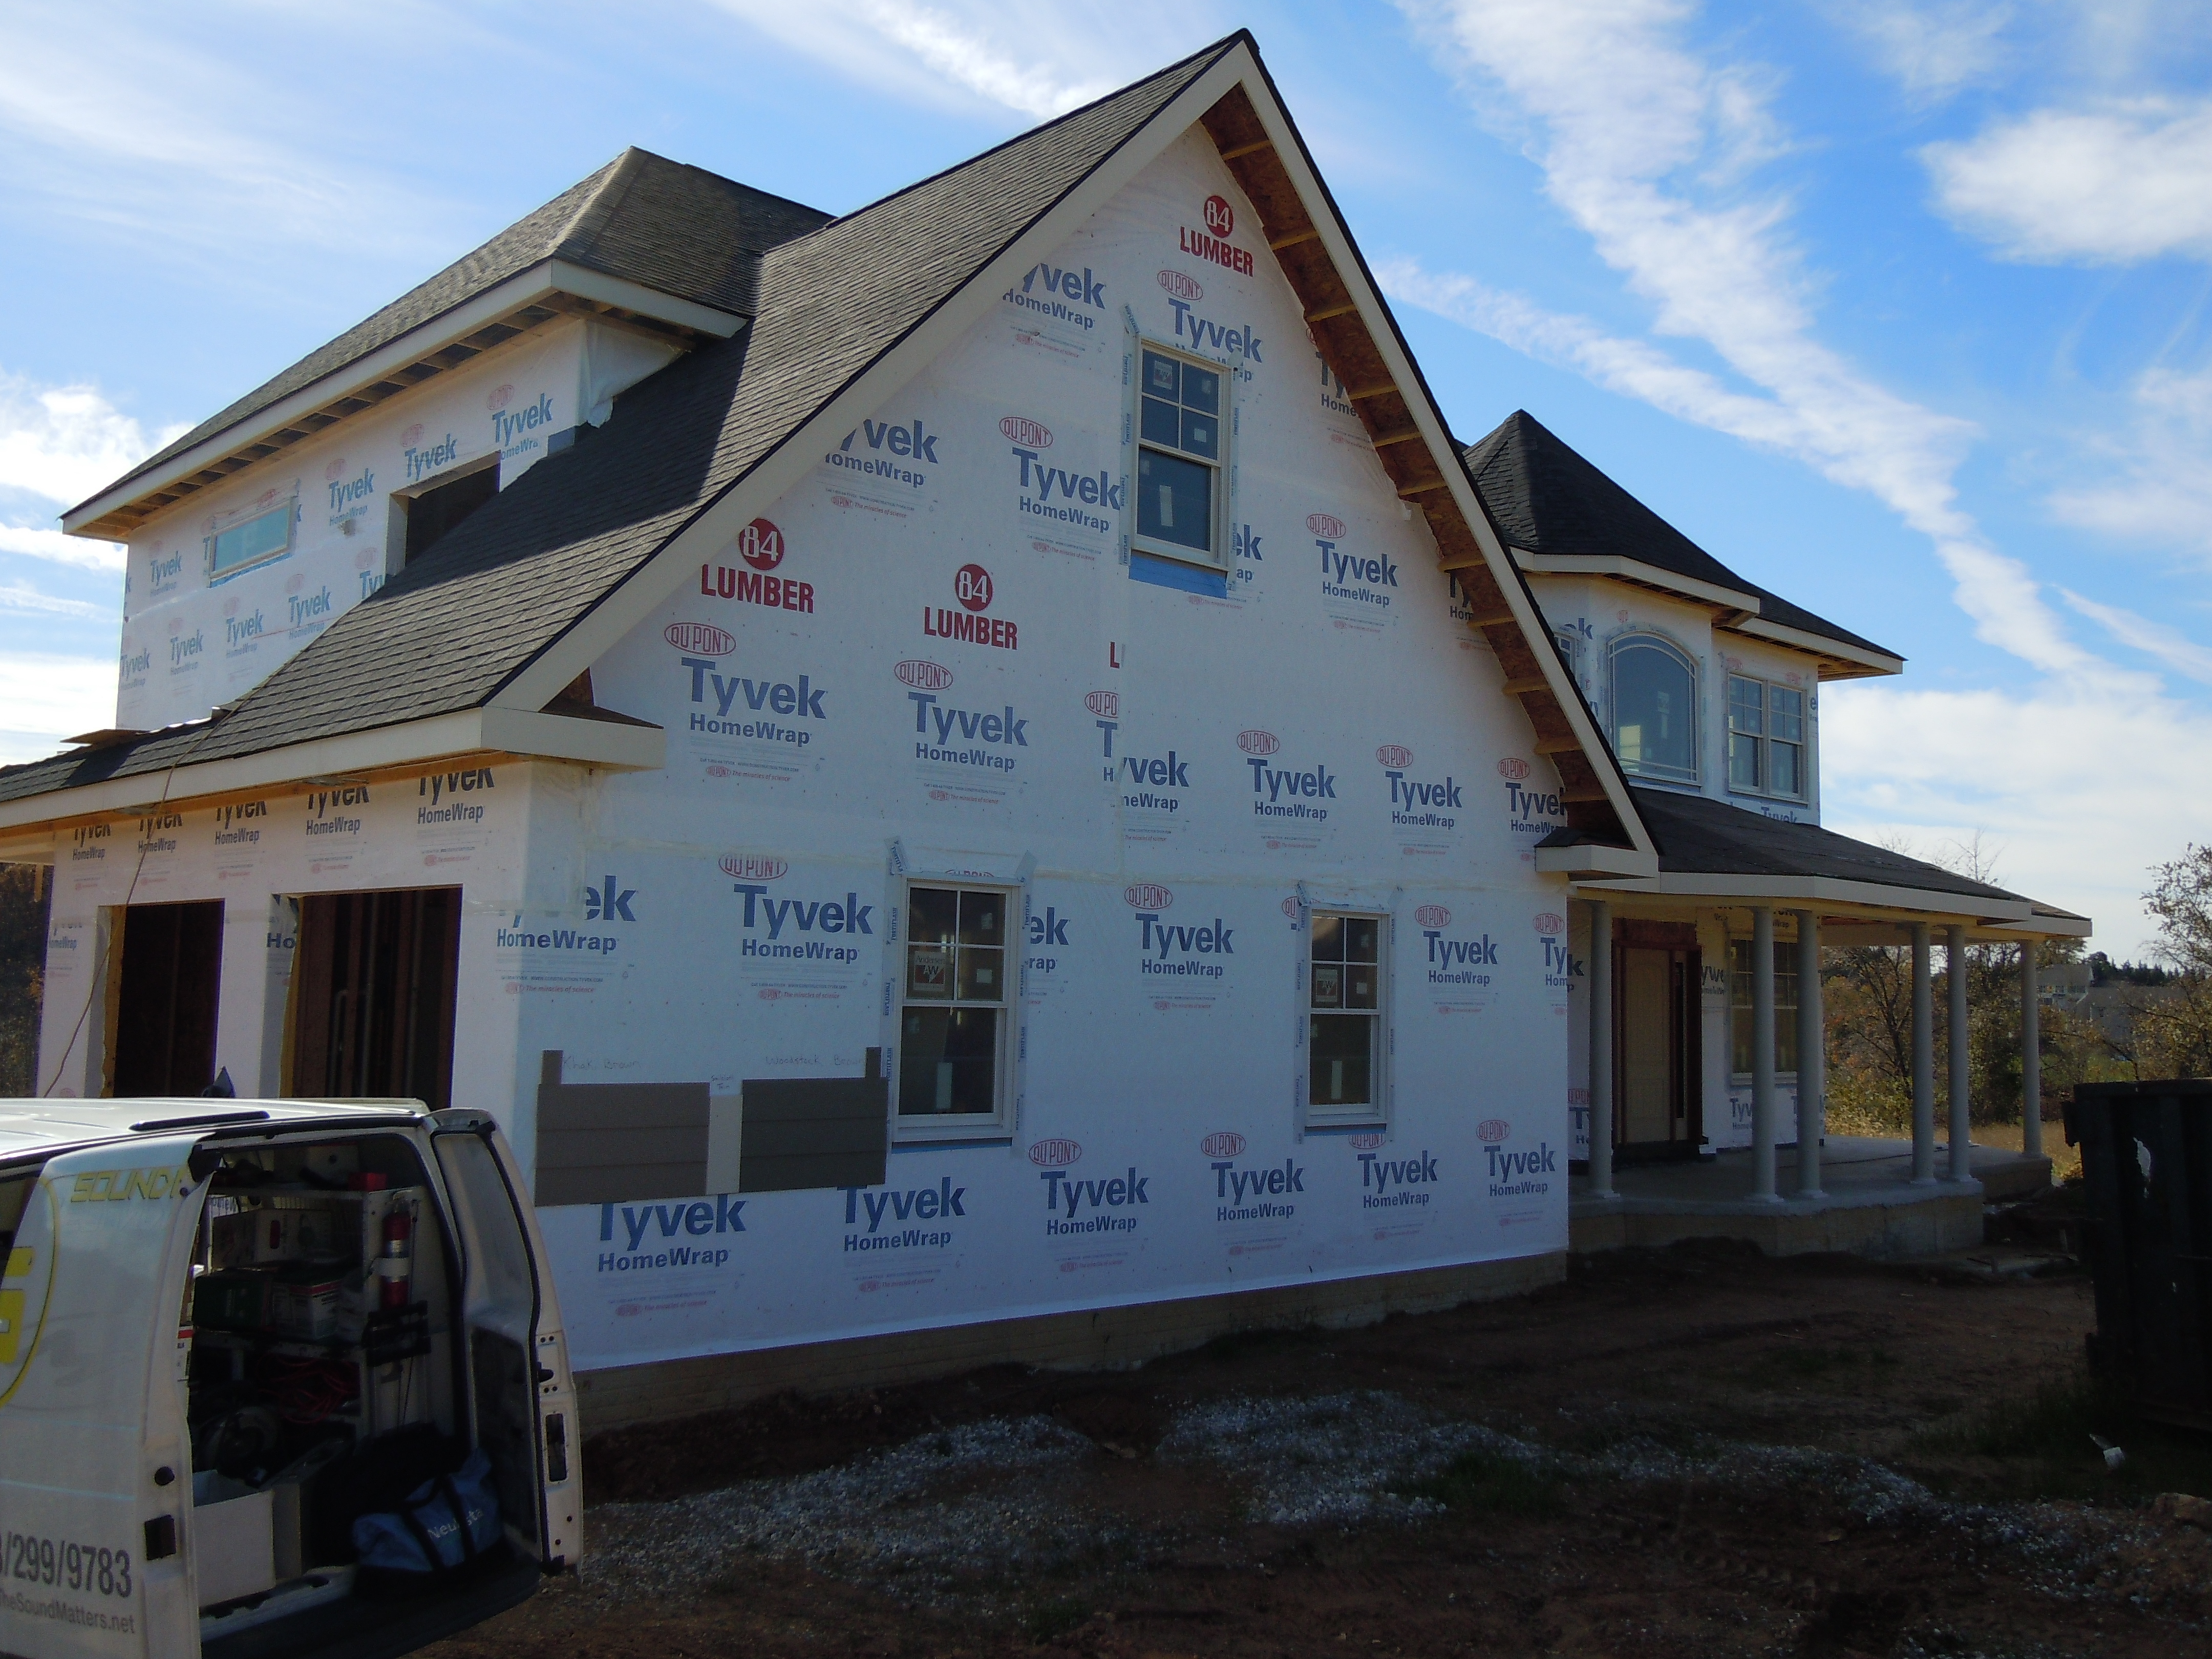 The Sound Matters Prewired New Home Construction Structured Wiring Soundmatters